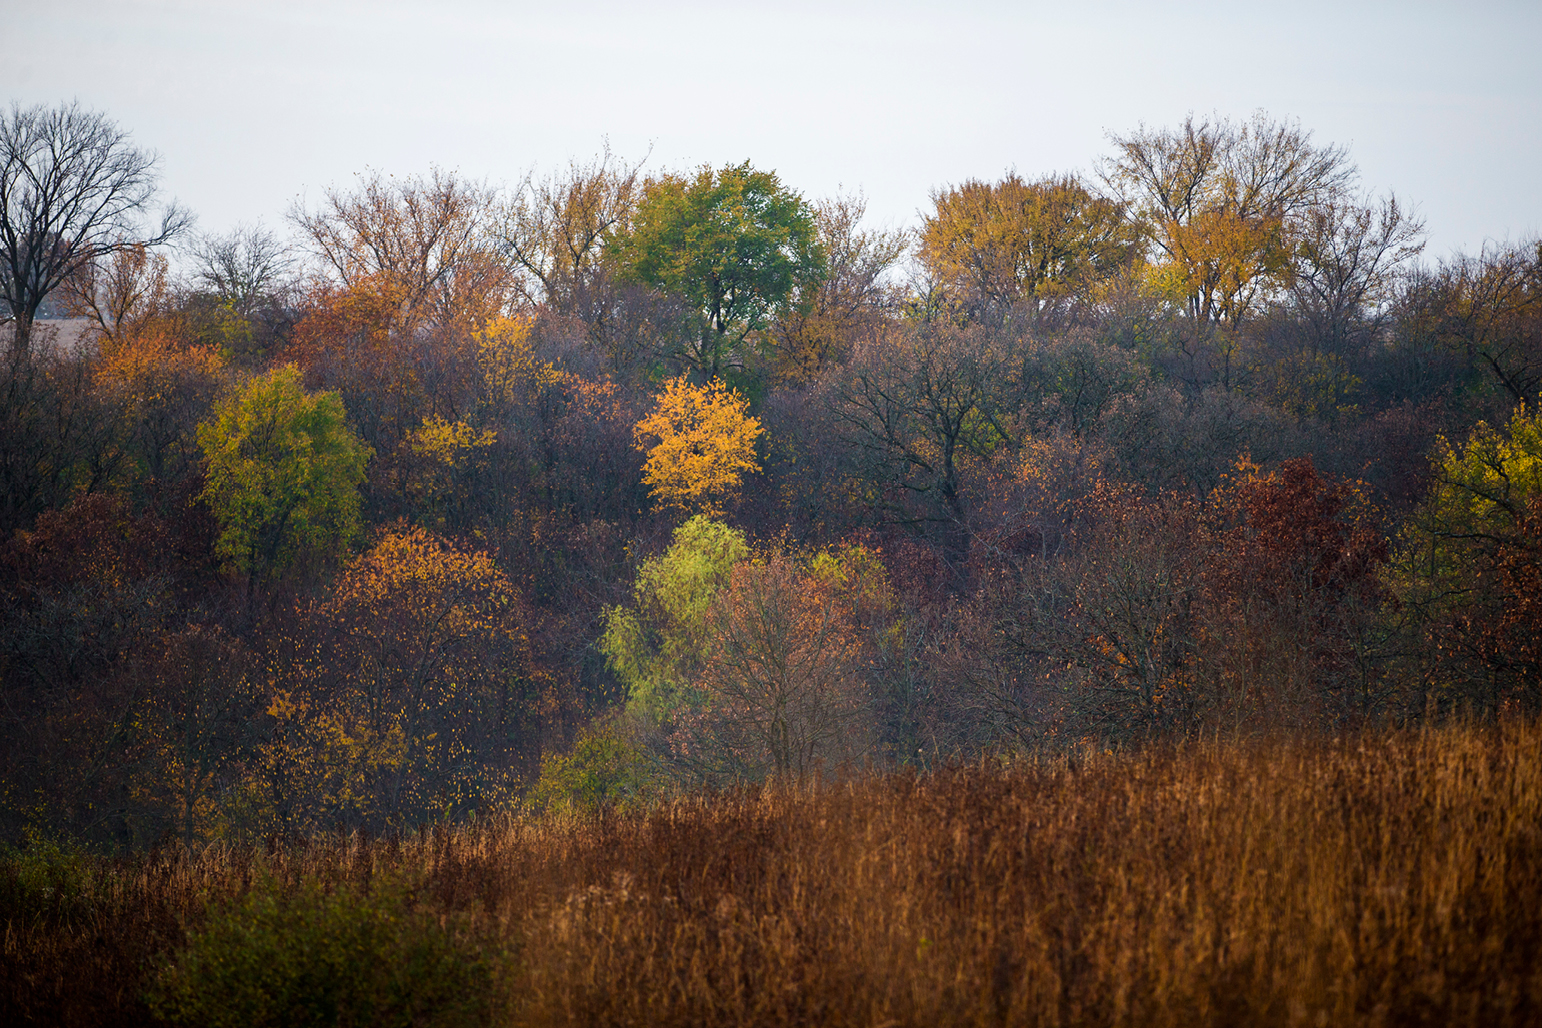 Fall colors on the trees at CERA